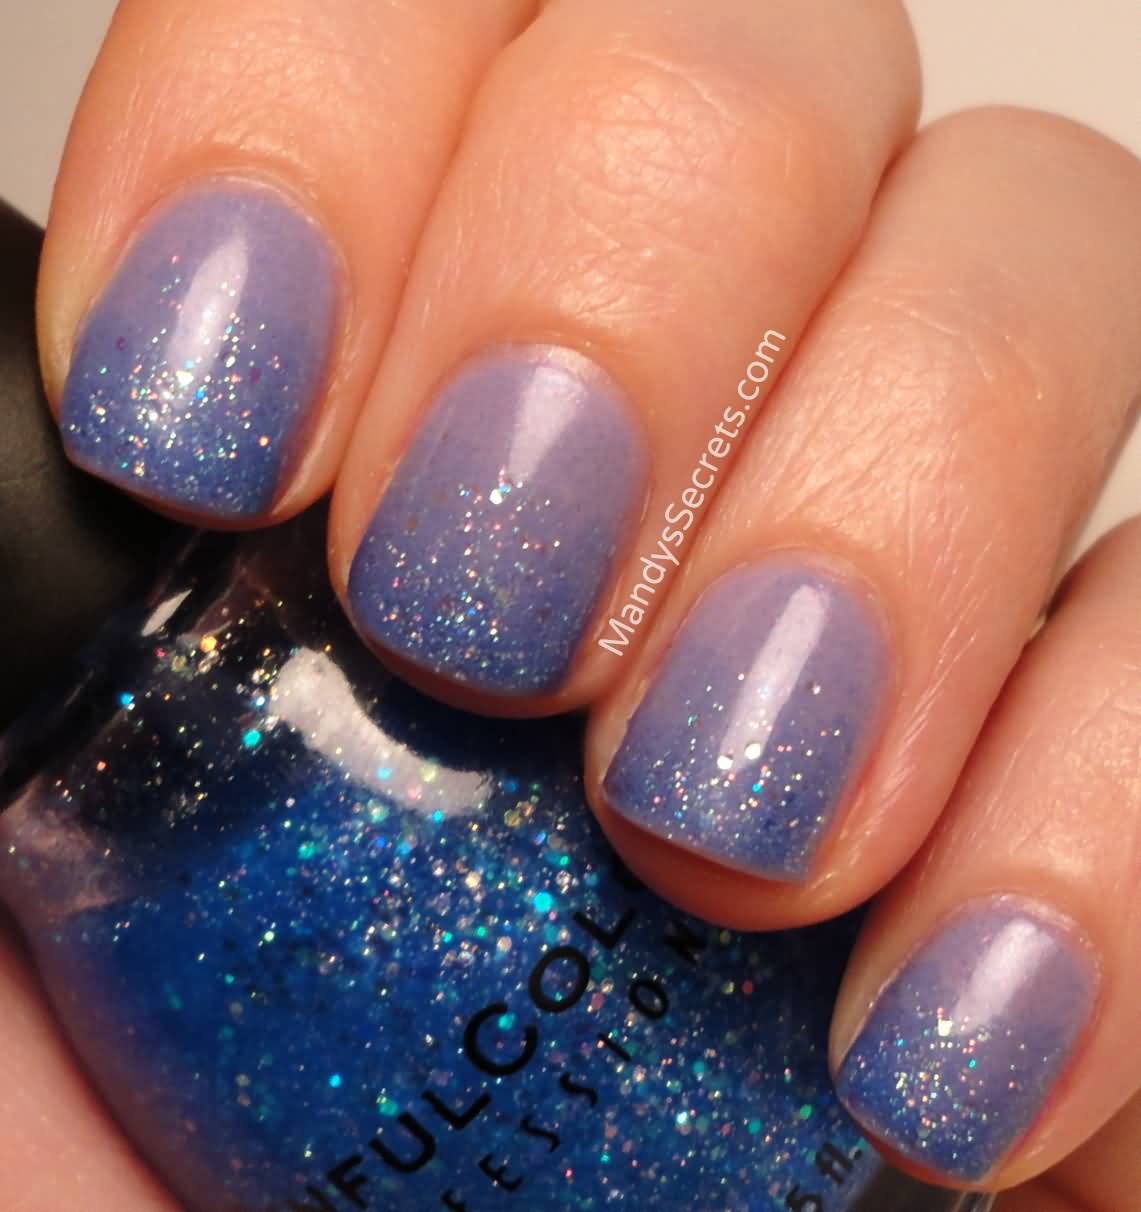 Gradient Nail Art: 70 Most Stylish Glitter Gradient Nail Art Ideas